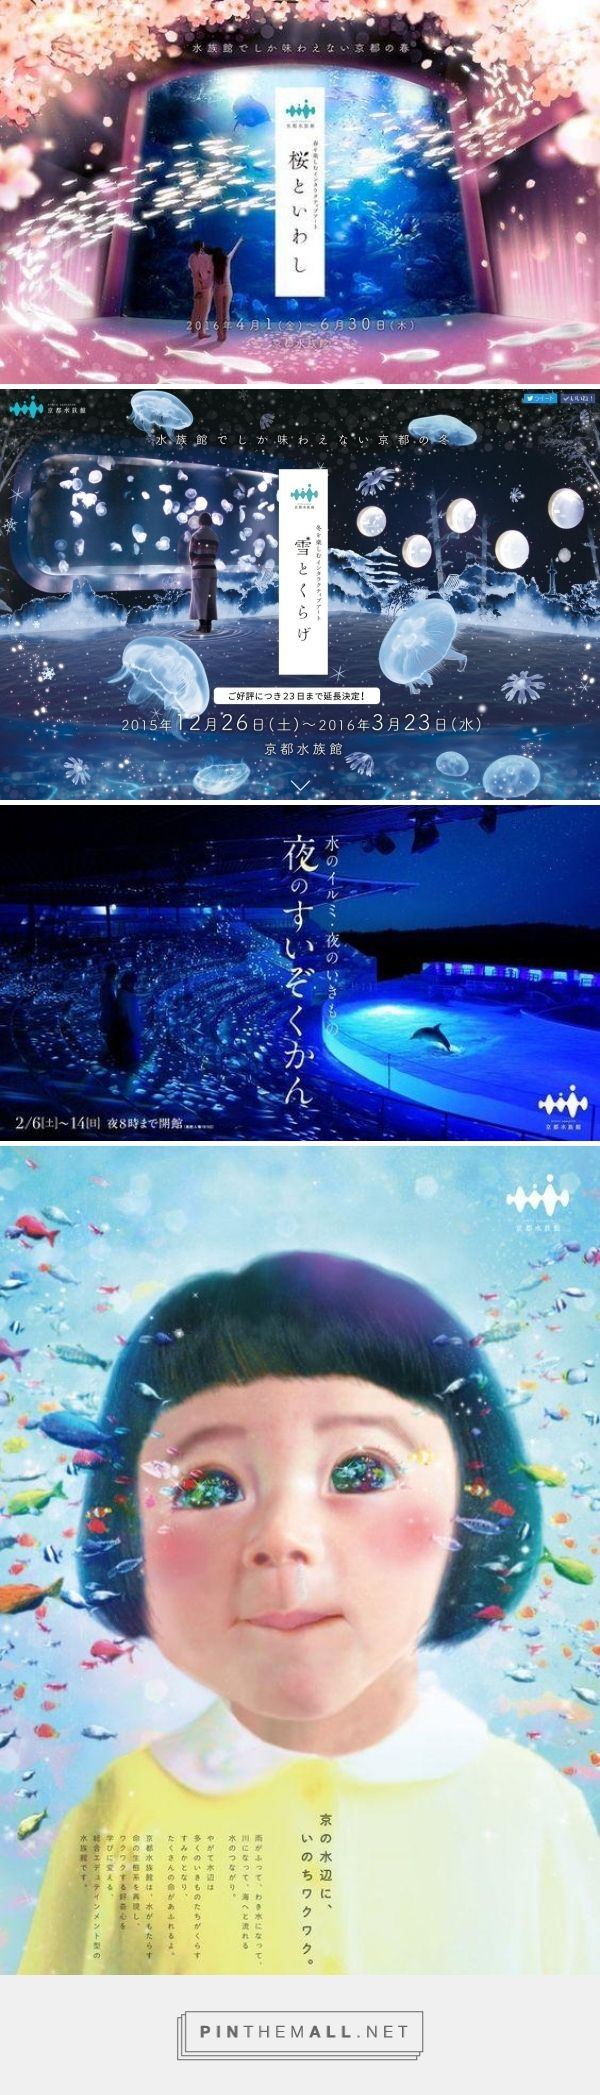 京都水族館 - created via https://pinthemall.net